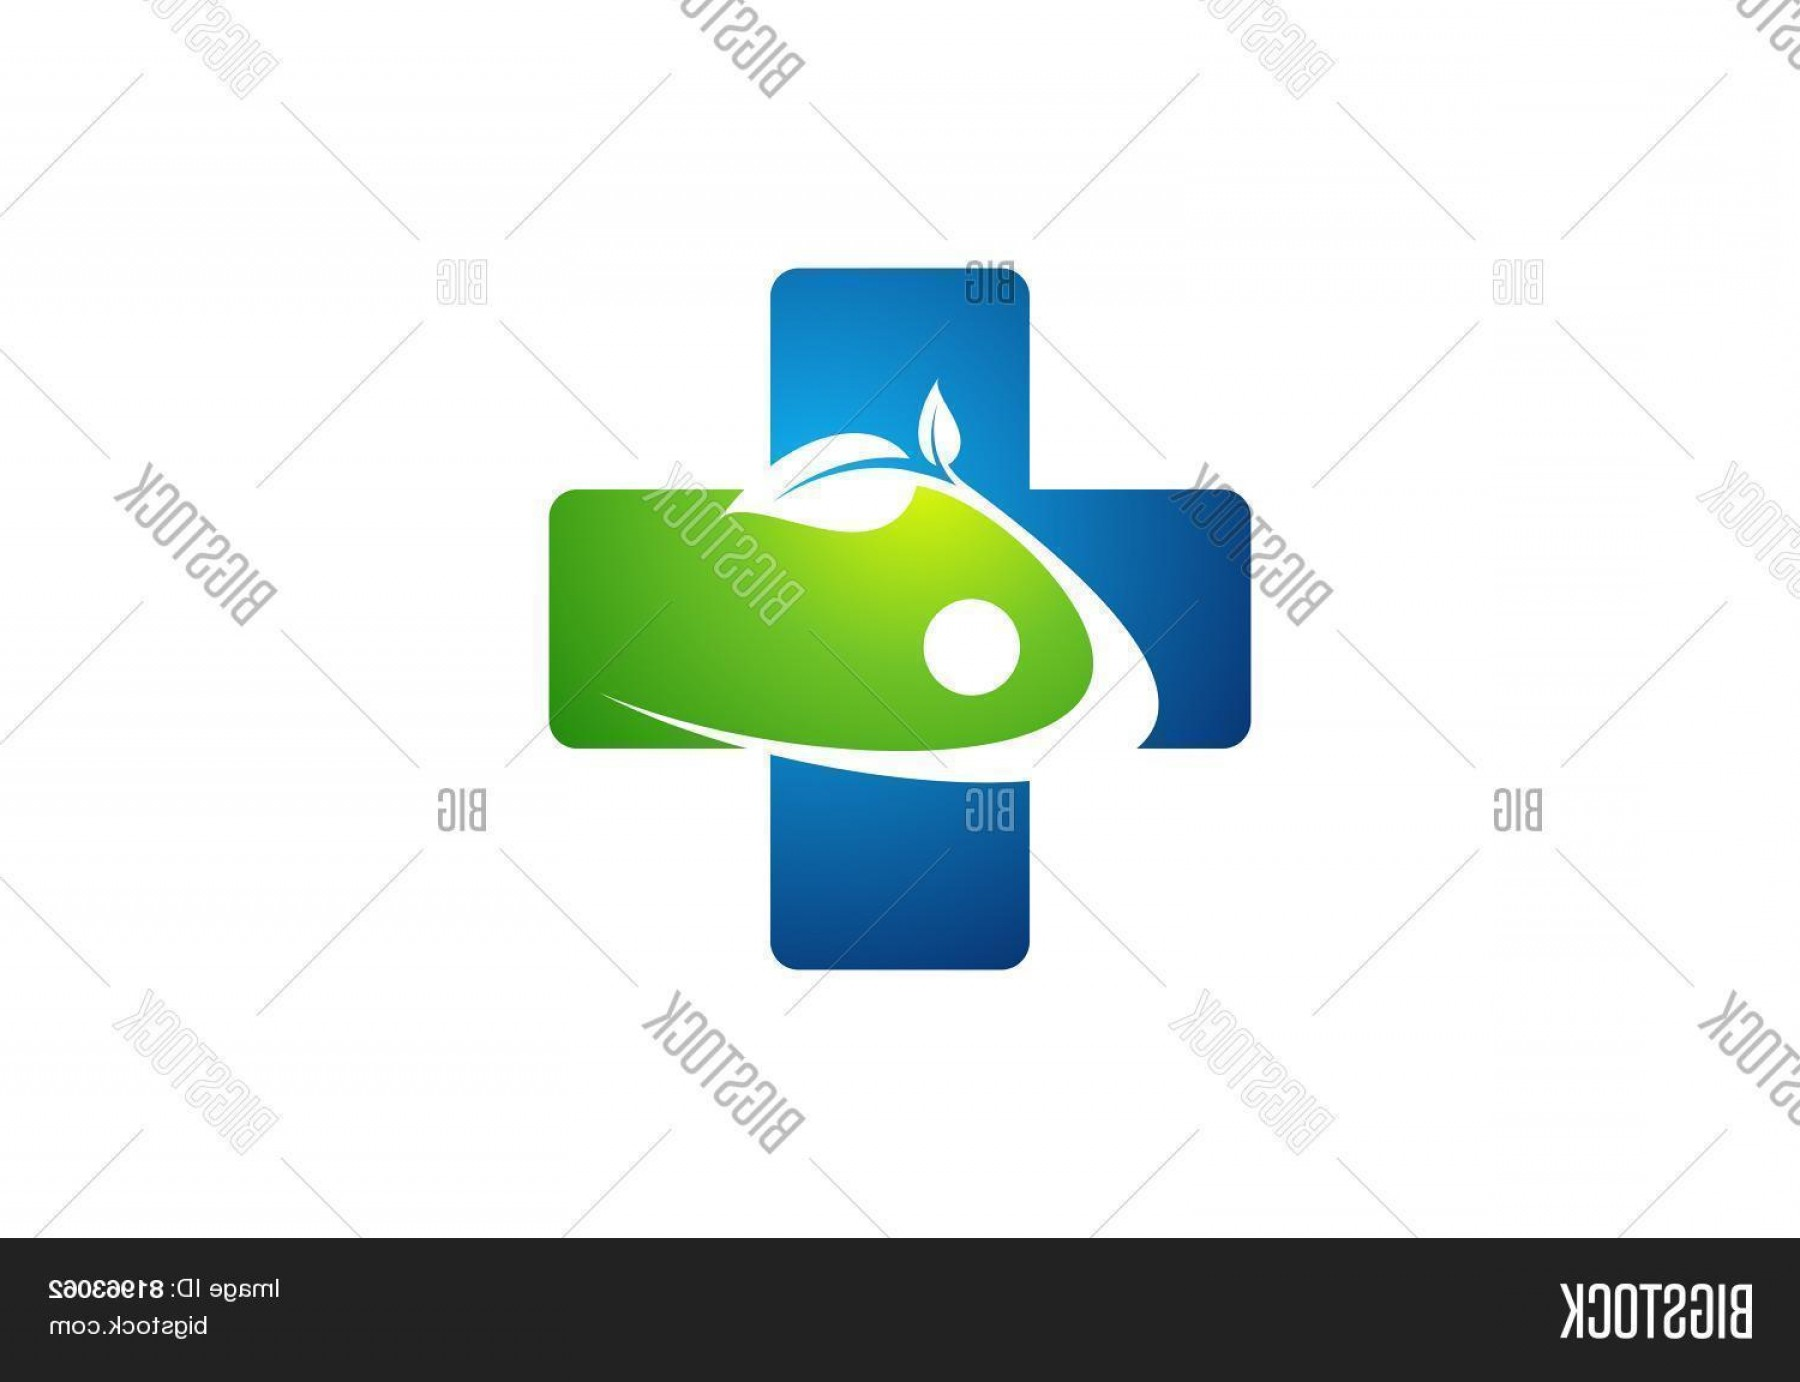 Health Vector Logo: Stock Vector Medicine Health Iconccross Plant Logocplus Nature Symbolchealthy People